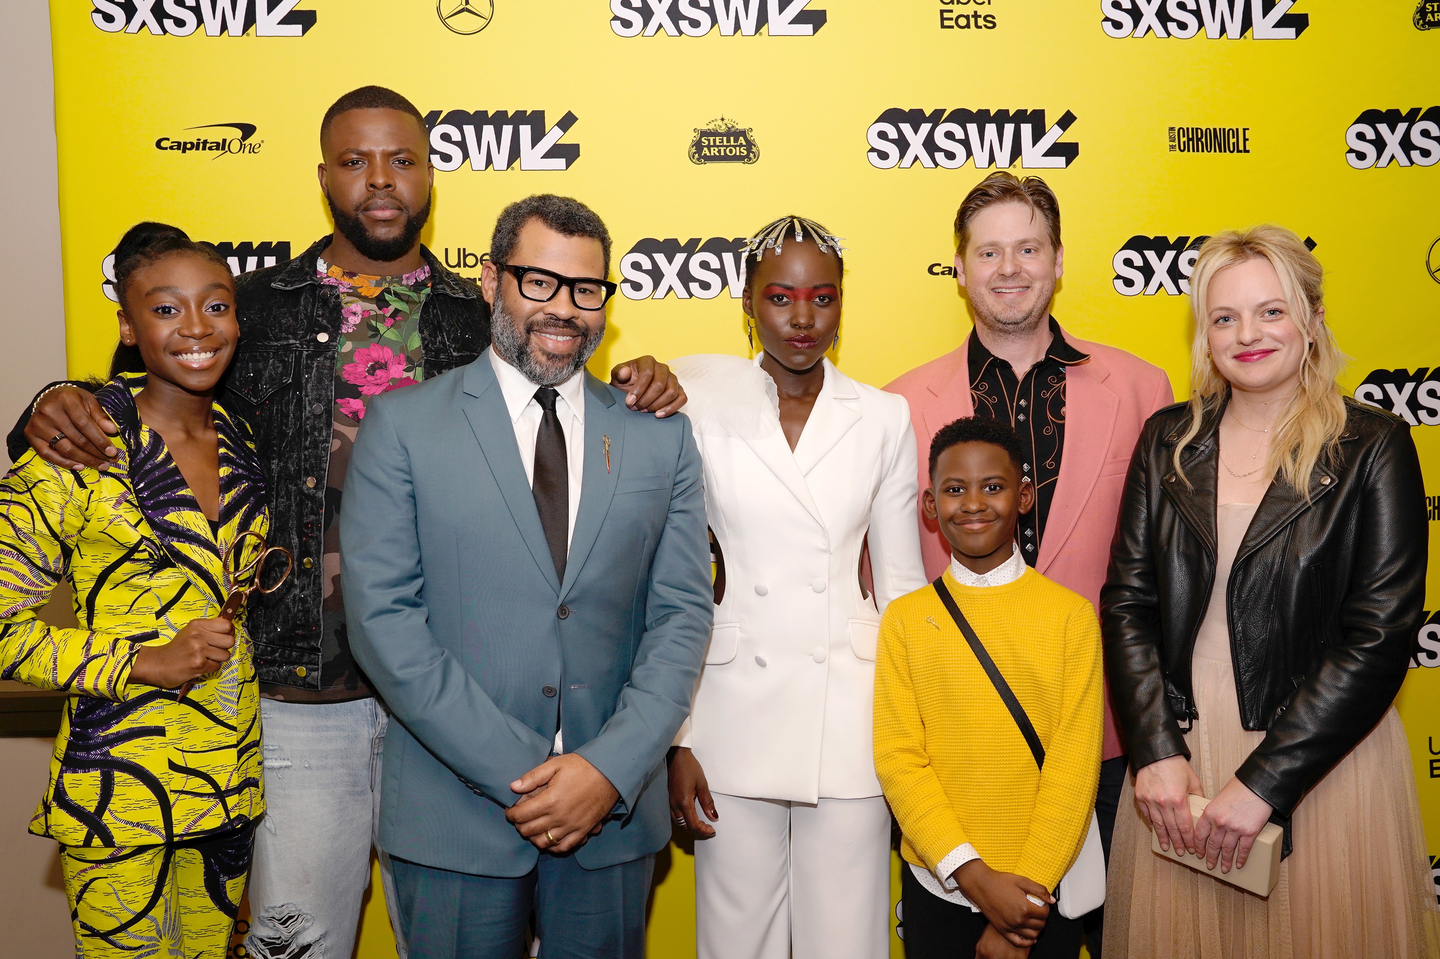 (L-R) Shahadi Wright Joseph, Winston Duke, Jordan Peele, Lupita Nyong'o, Evan Alex, Tim Heidecker, and Elisabeth Moss attend the Us world premiere at the Paramount Theatre - Photo by Ismael Quintanilla/Getty Images for SXSW